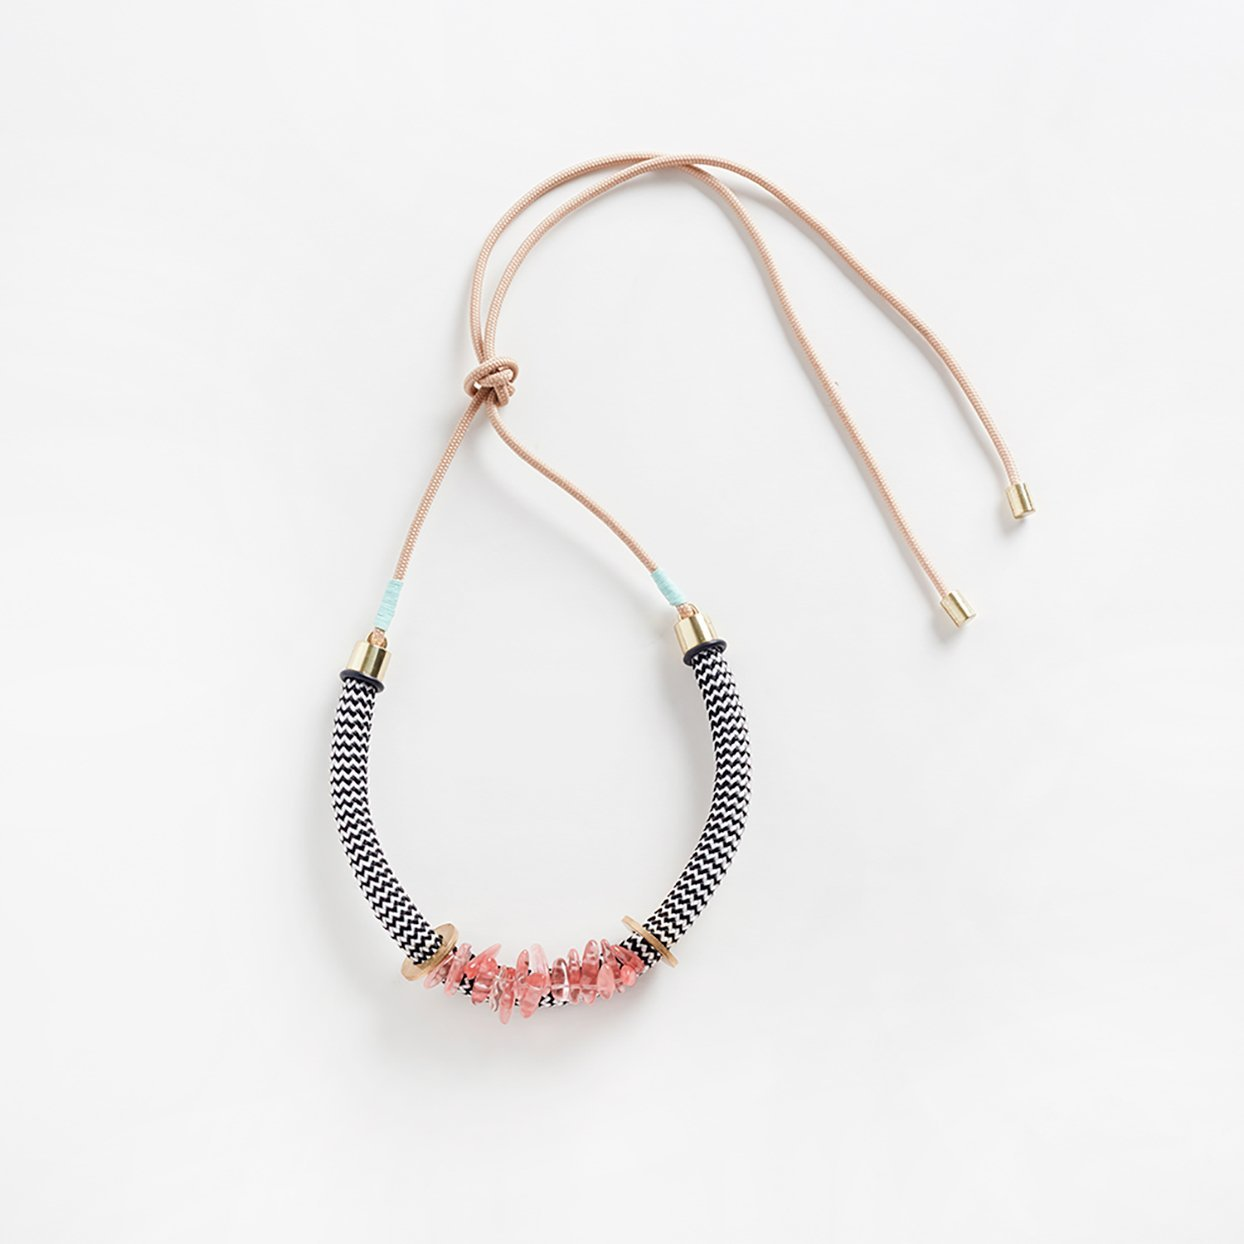 Pichulik Egun Rose Necklace